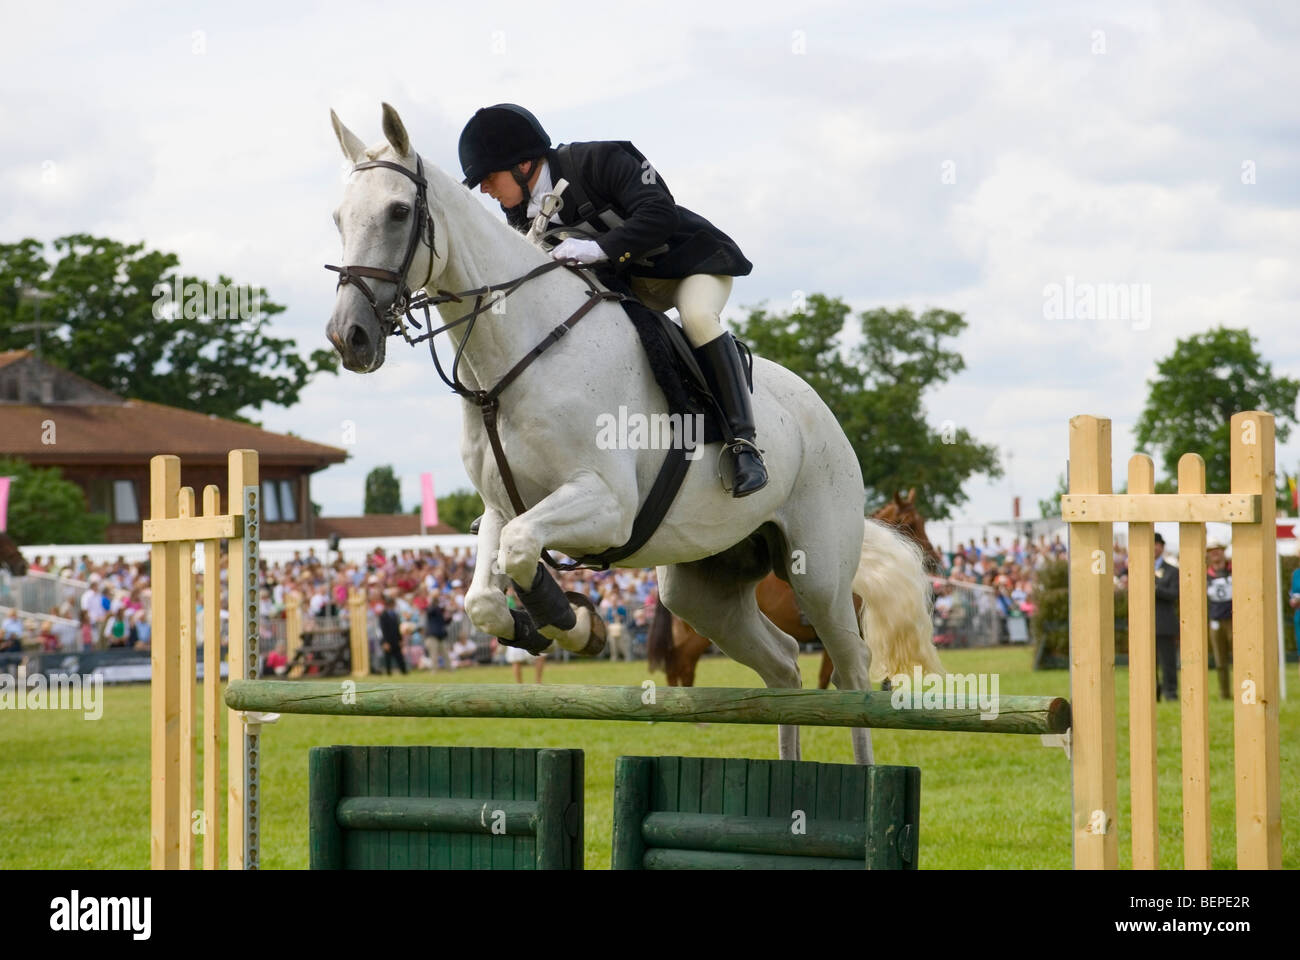 Show Jumping at the last ever Royal Show event - Stock Image